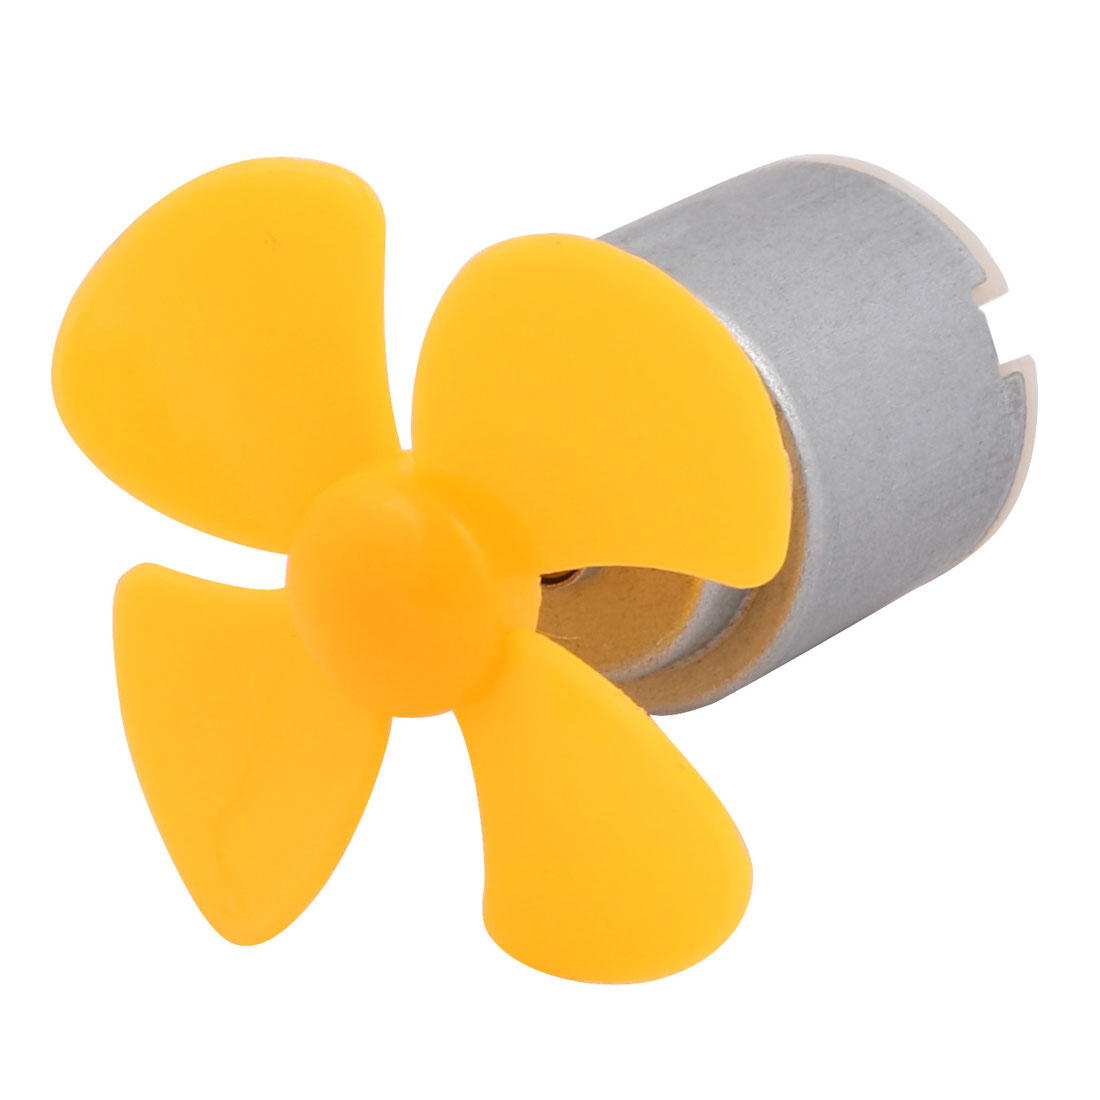 DC 3V 11500RPM High Torque Motor 4 Vanes 40mm Dia Aircraft DIY Propeller Yellow